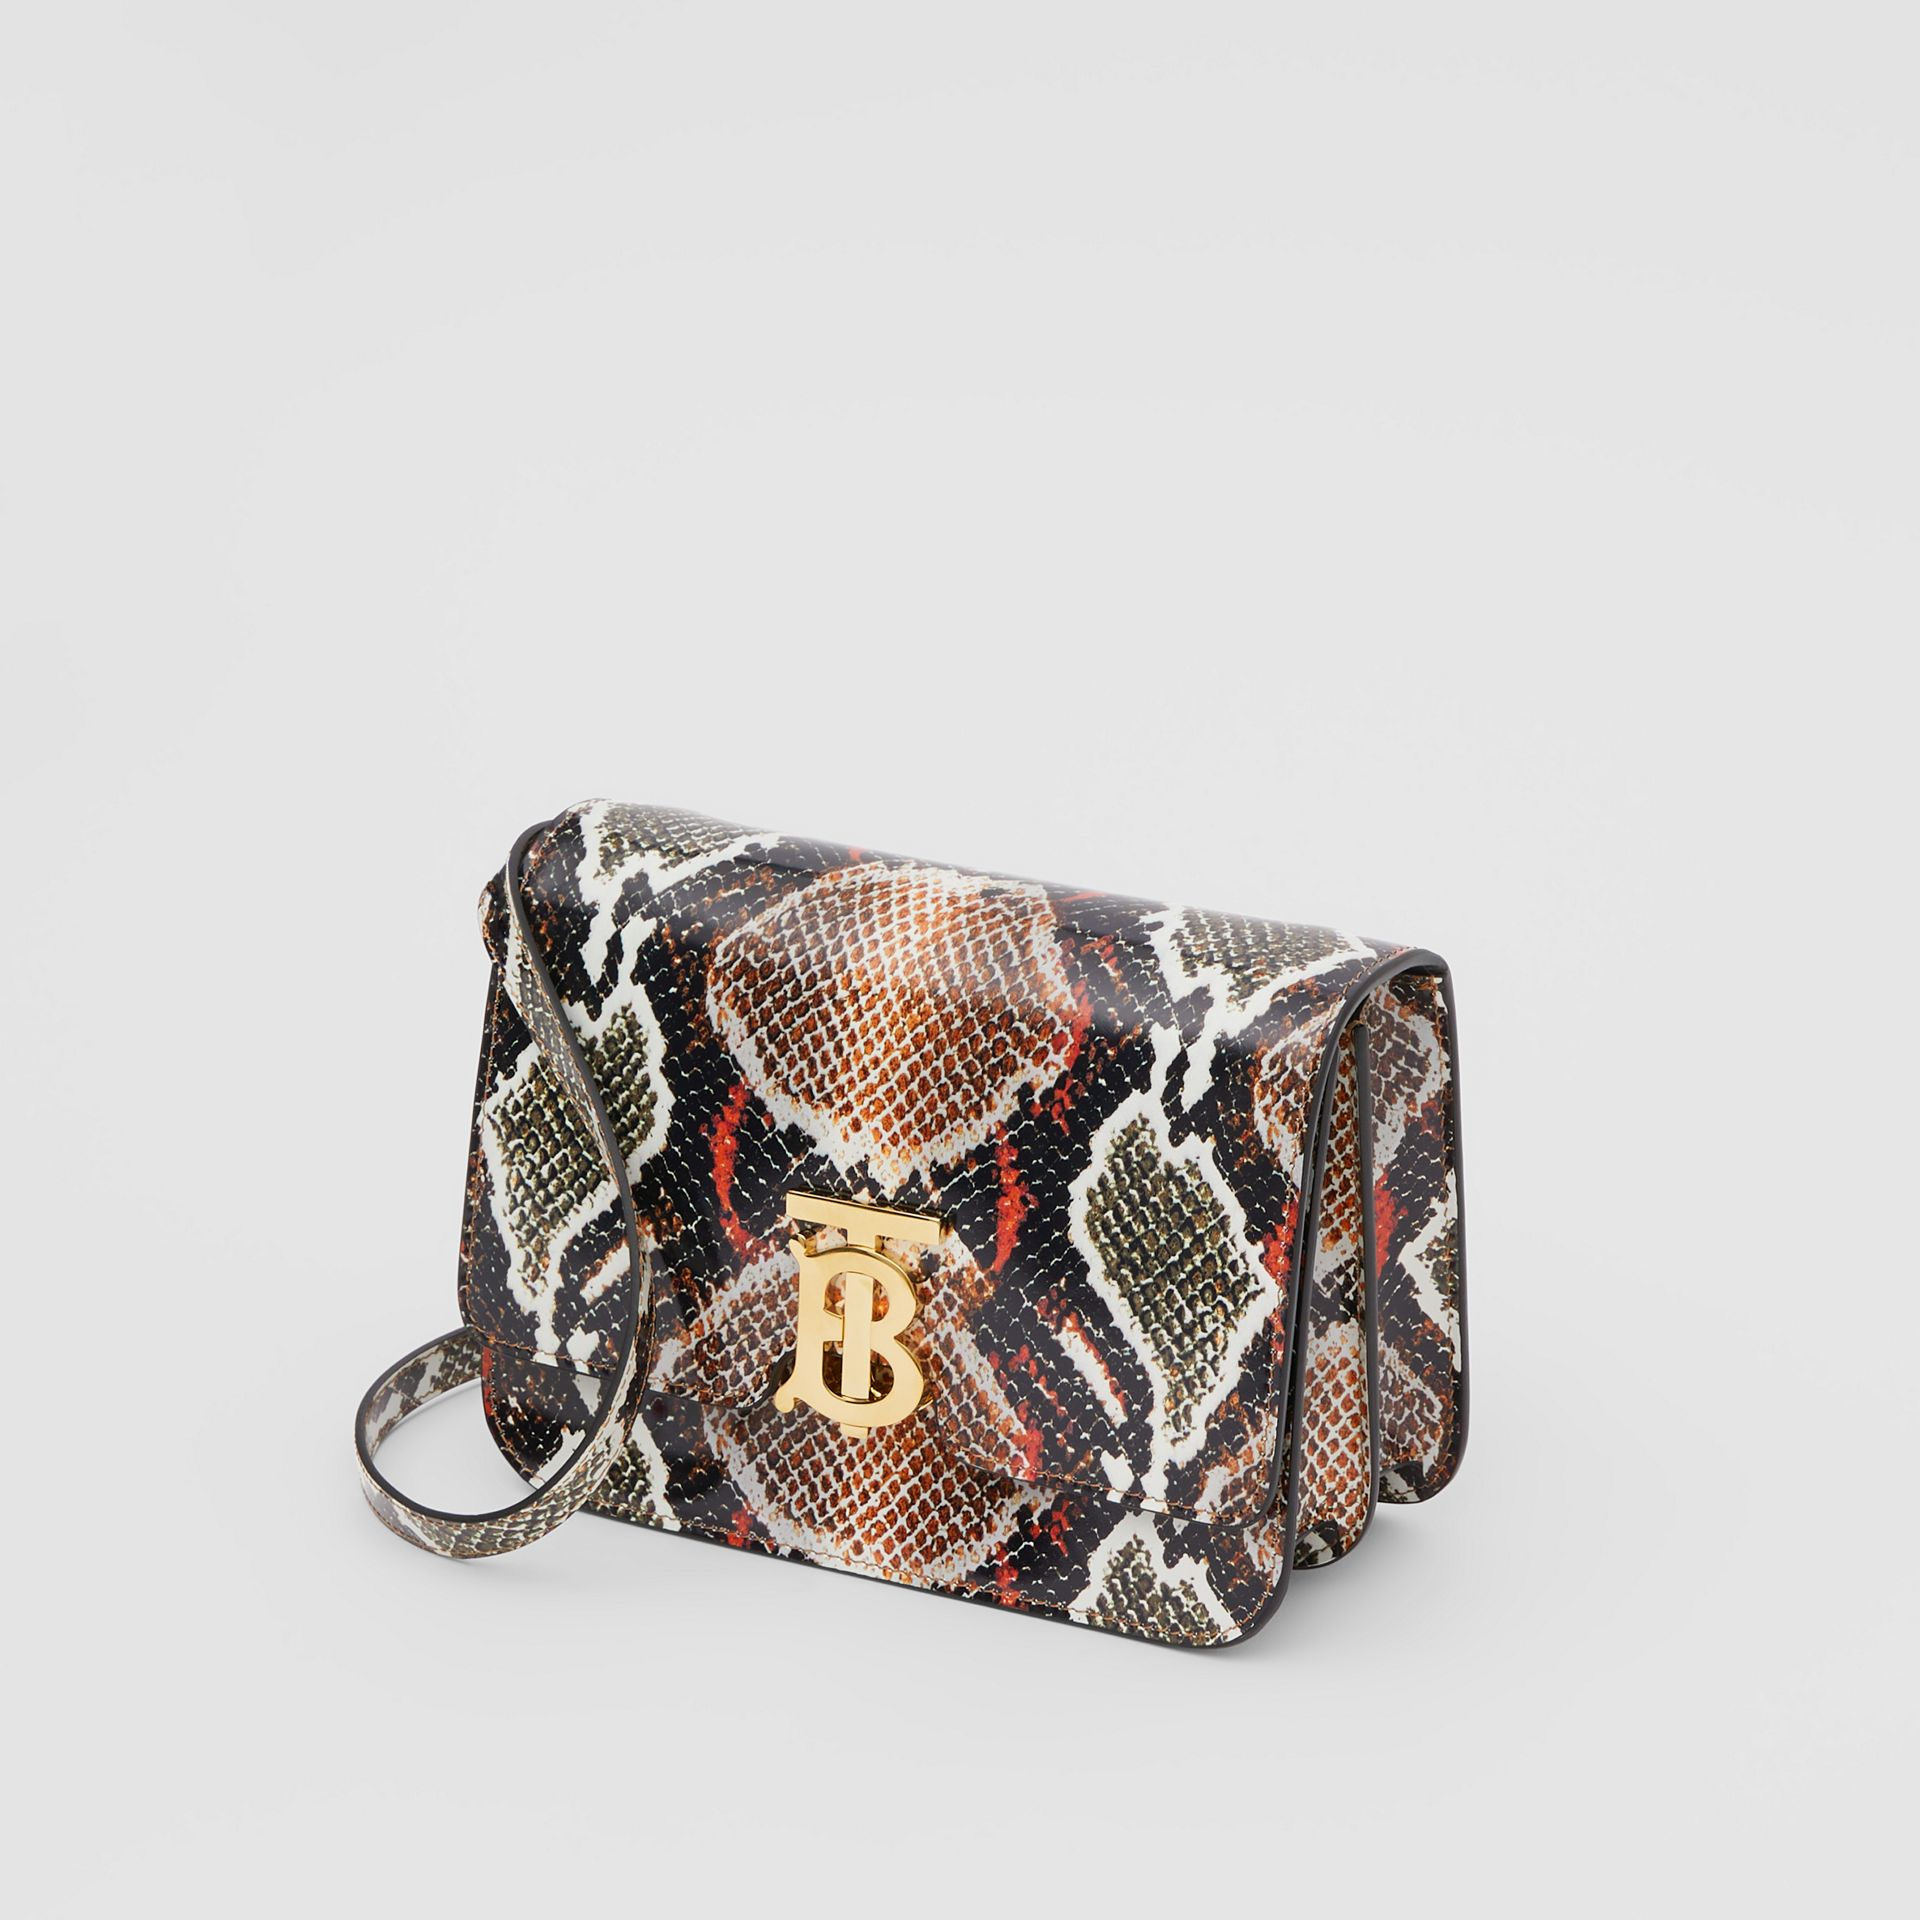 Small Python Print Leather TB Bag in Soft Cocoa - Women | Burberry - gallery image 2